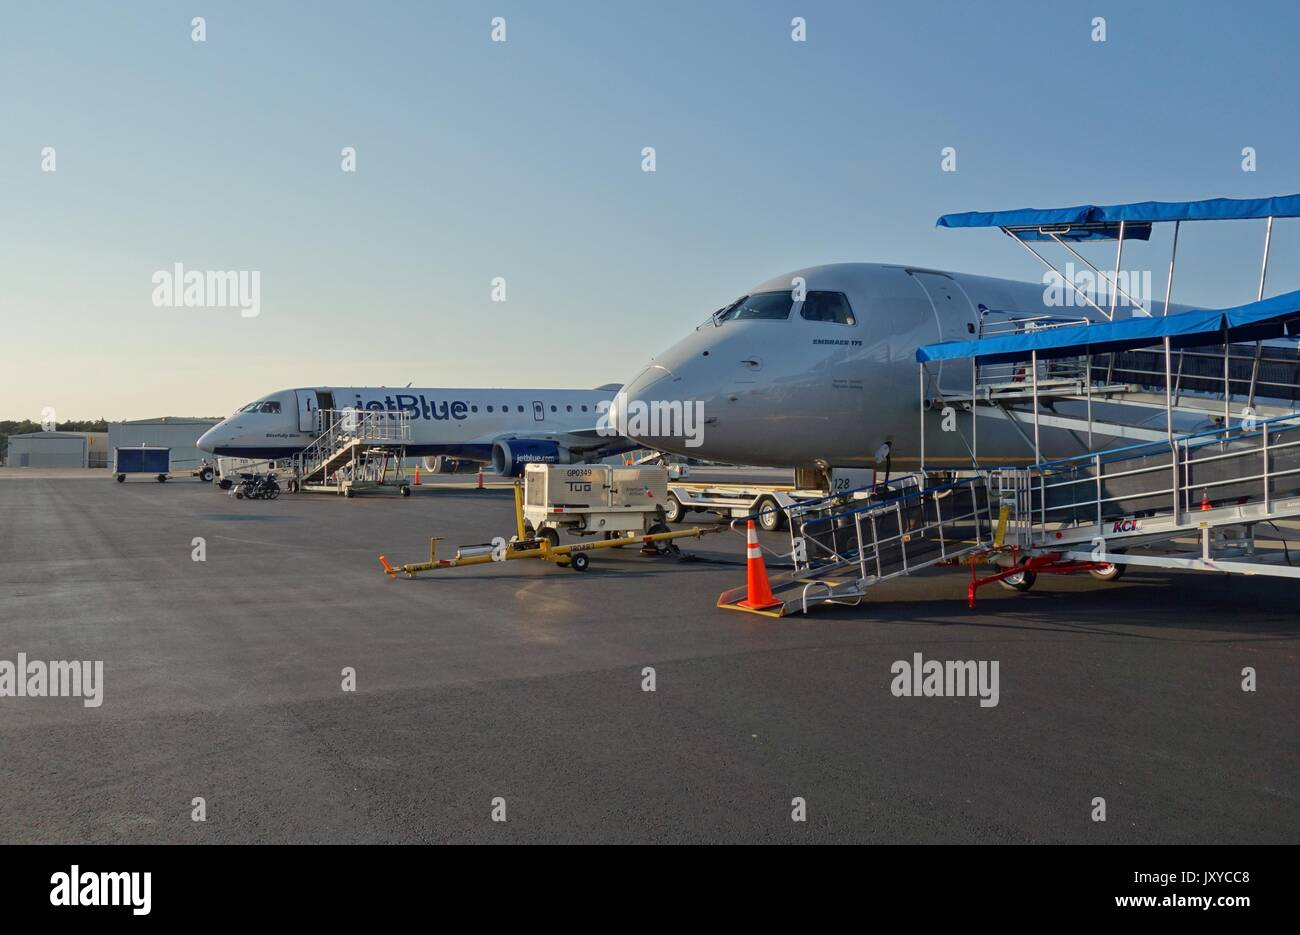 View of the Nantucket memorial Airport (ACK), a small airport on the island of Nantucket off Cape Cod in Massachusetts - Stock Image